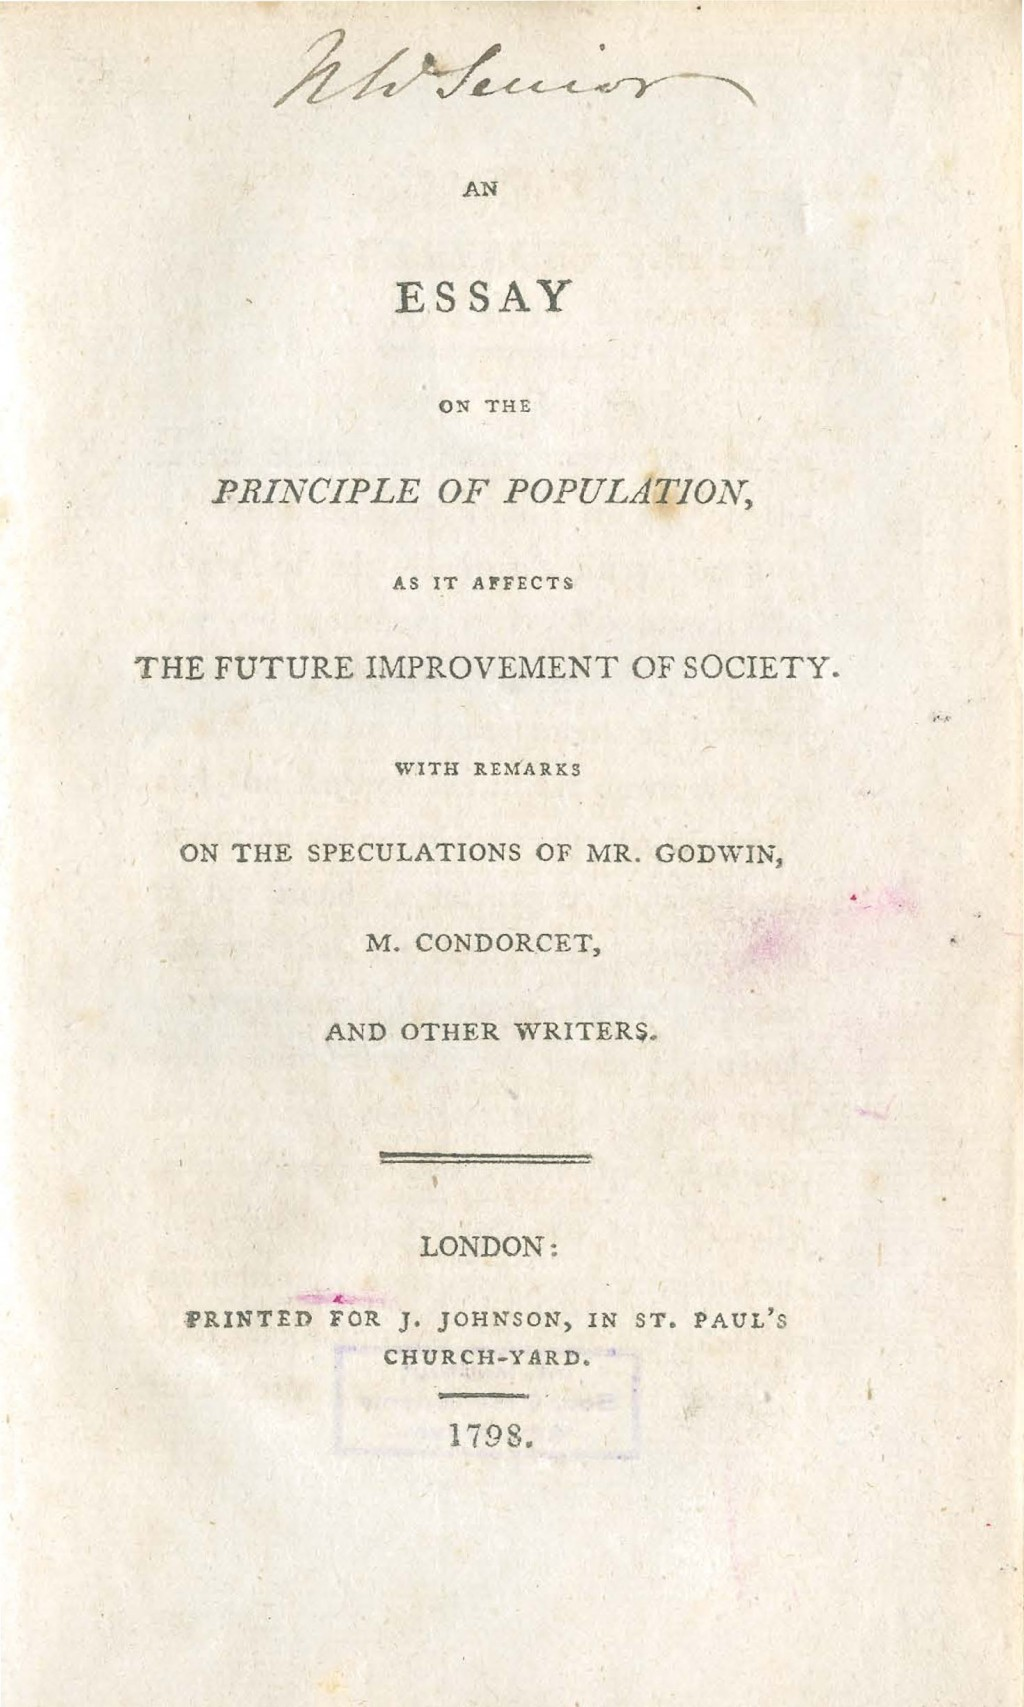 001 Thomas Malthus An Essay On The Principle Of Population Marvelous Summary Analysis Argued In His (1798) That Large